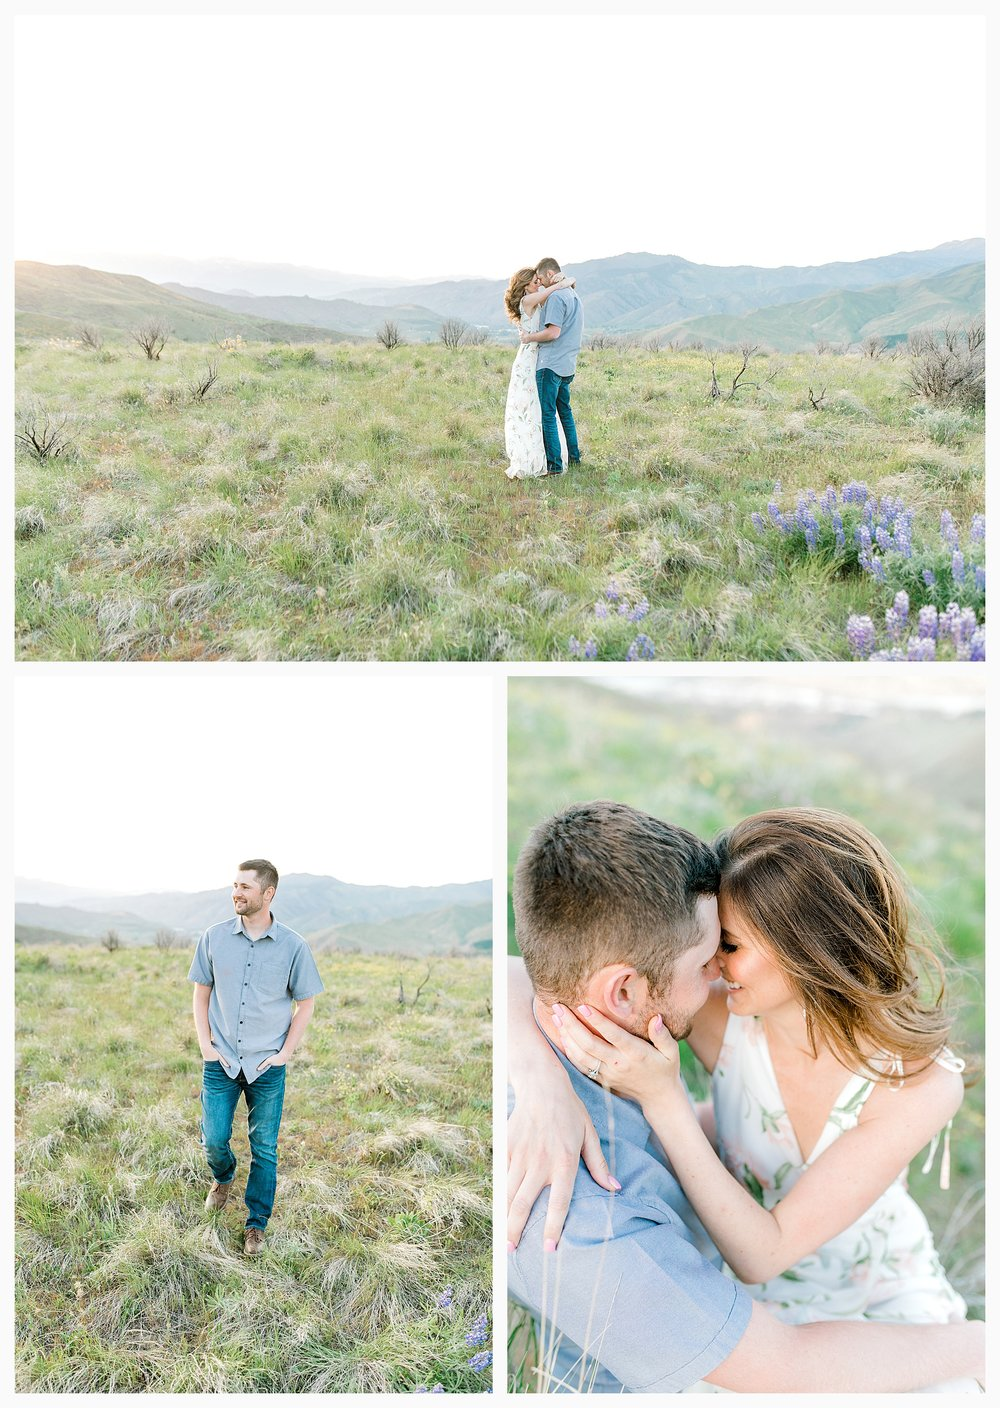 Engagement session amongst the wildflowers in Wenatchee, Washington | Engagement Session Outfit Inspiration for Wedding Photography with Emma Rose Company | Light and Airy PNW Photographer, Seattle Bride_0020.jpg